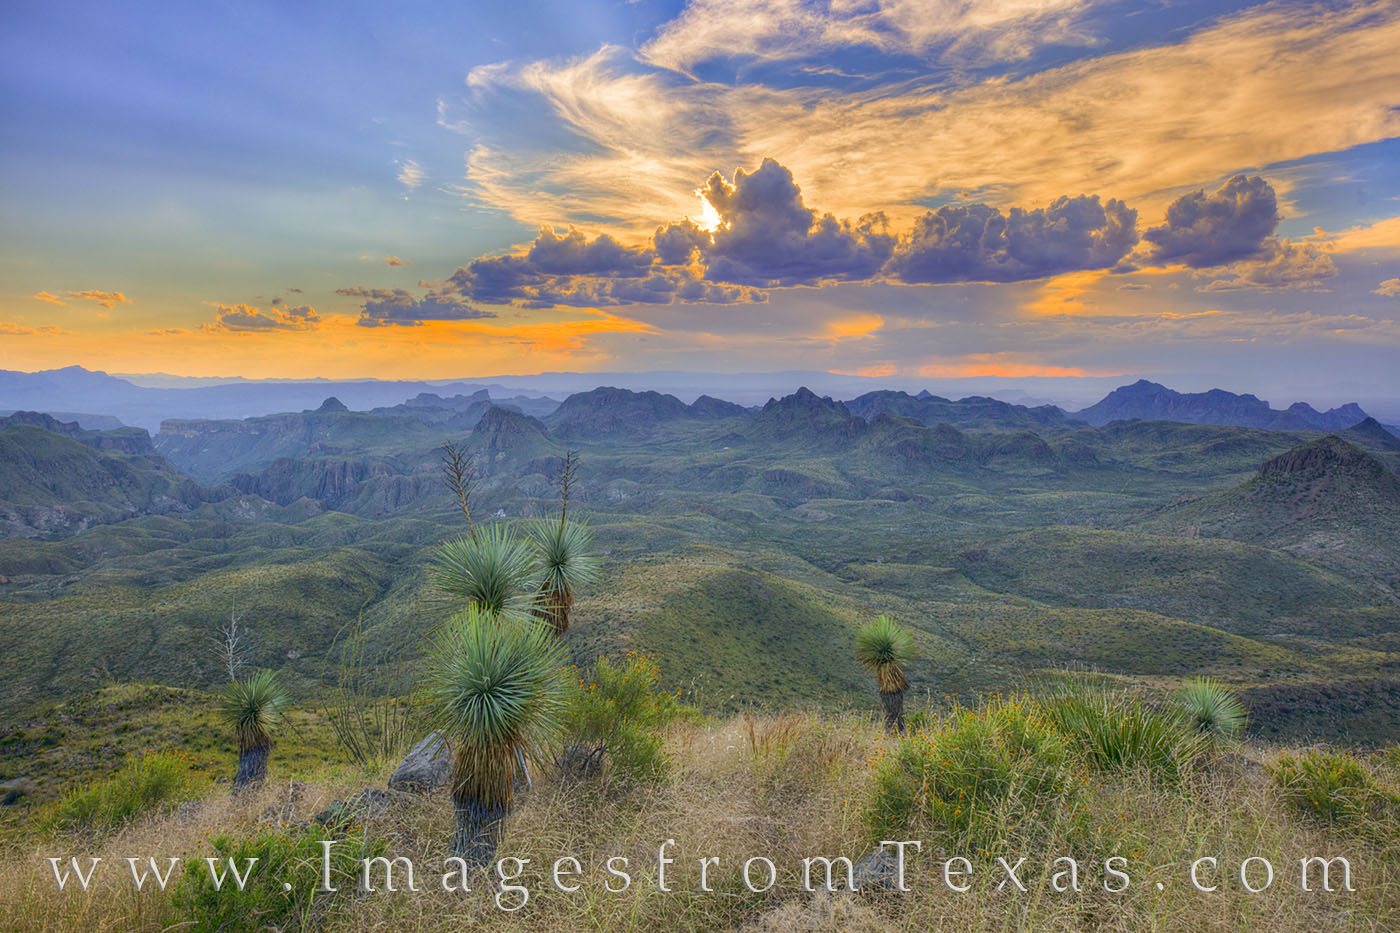 oso mountain, oso peak, big bend ranch state park, hiking, dirt road, sunset, mountains, big bend ranch, yucca, cacti, desert, photo